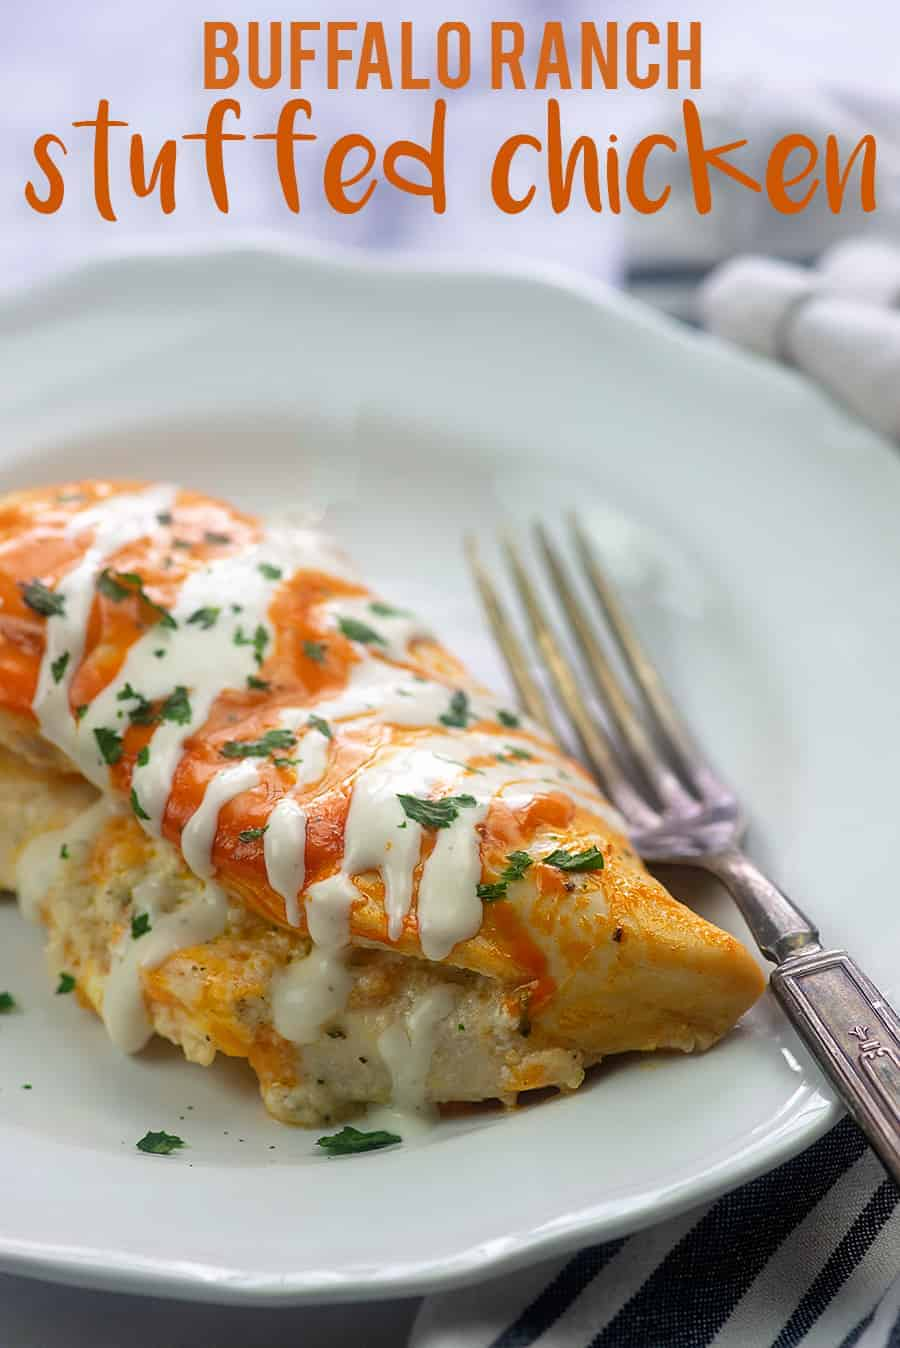 buffalo ranch chicken recipe on white plate